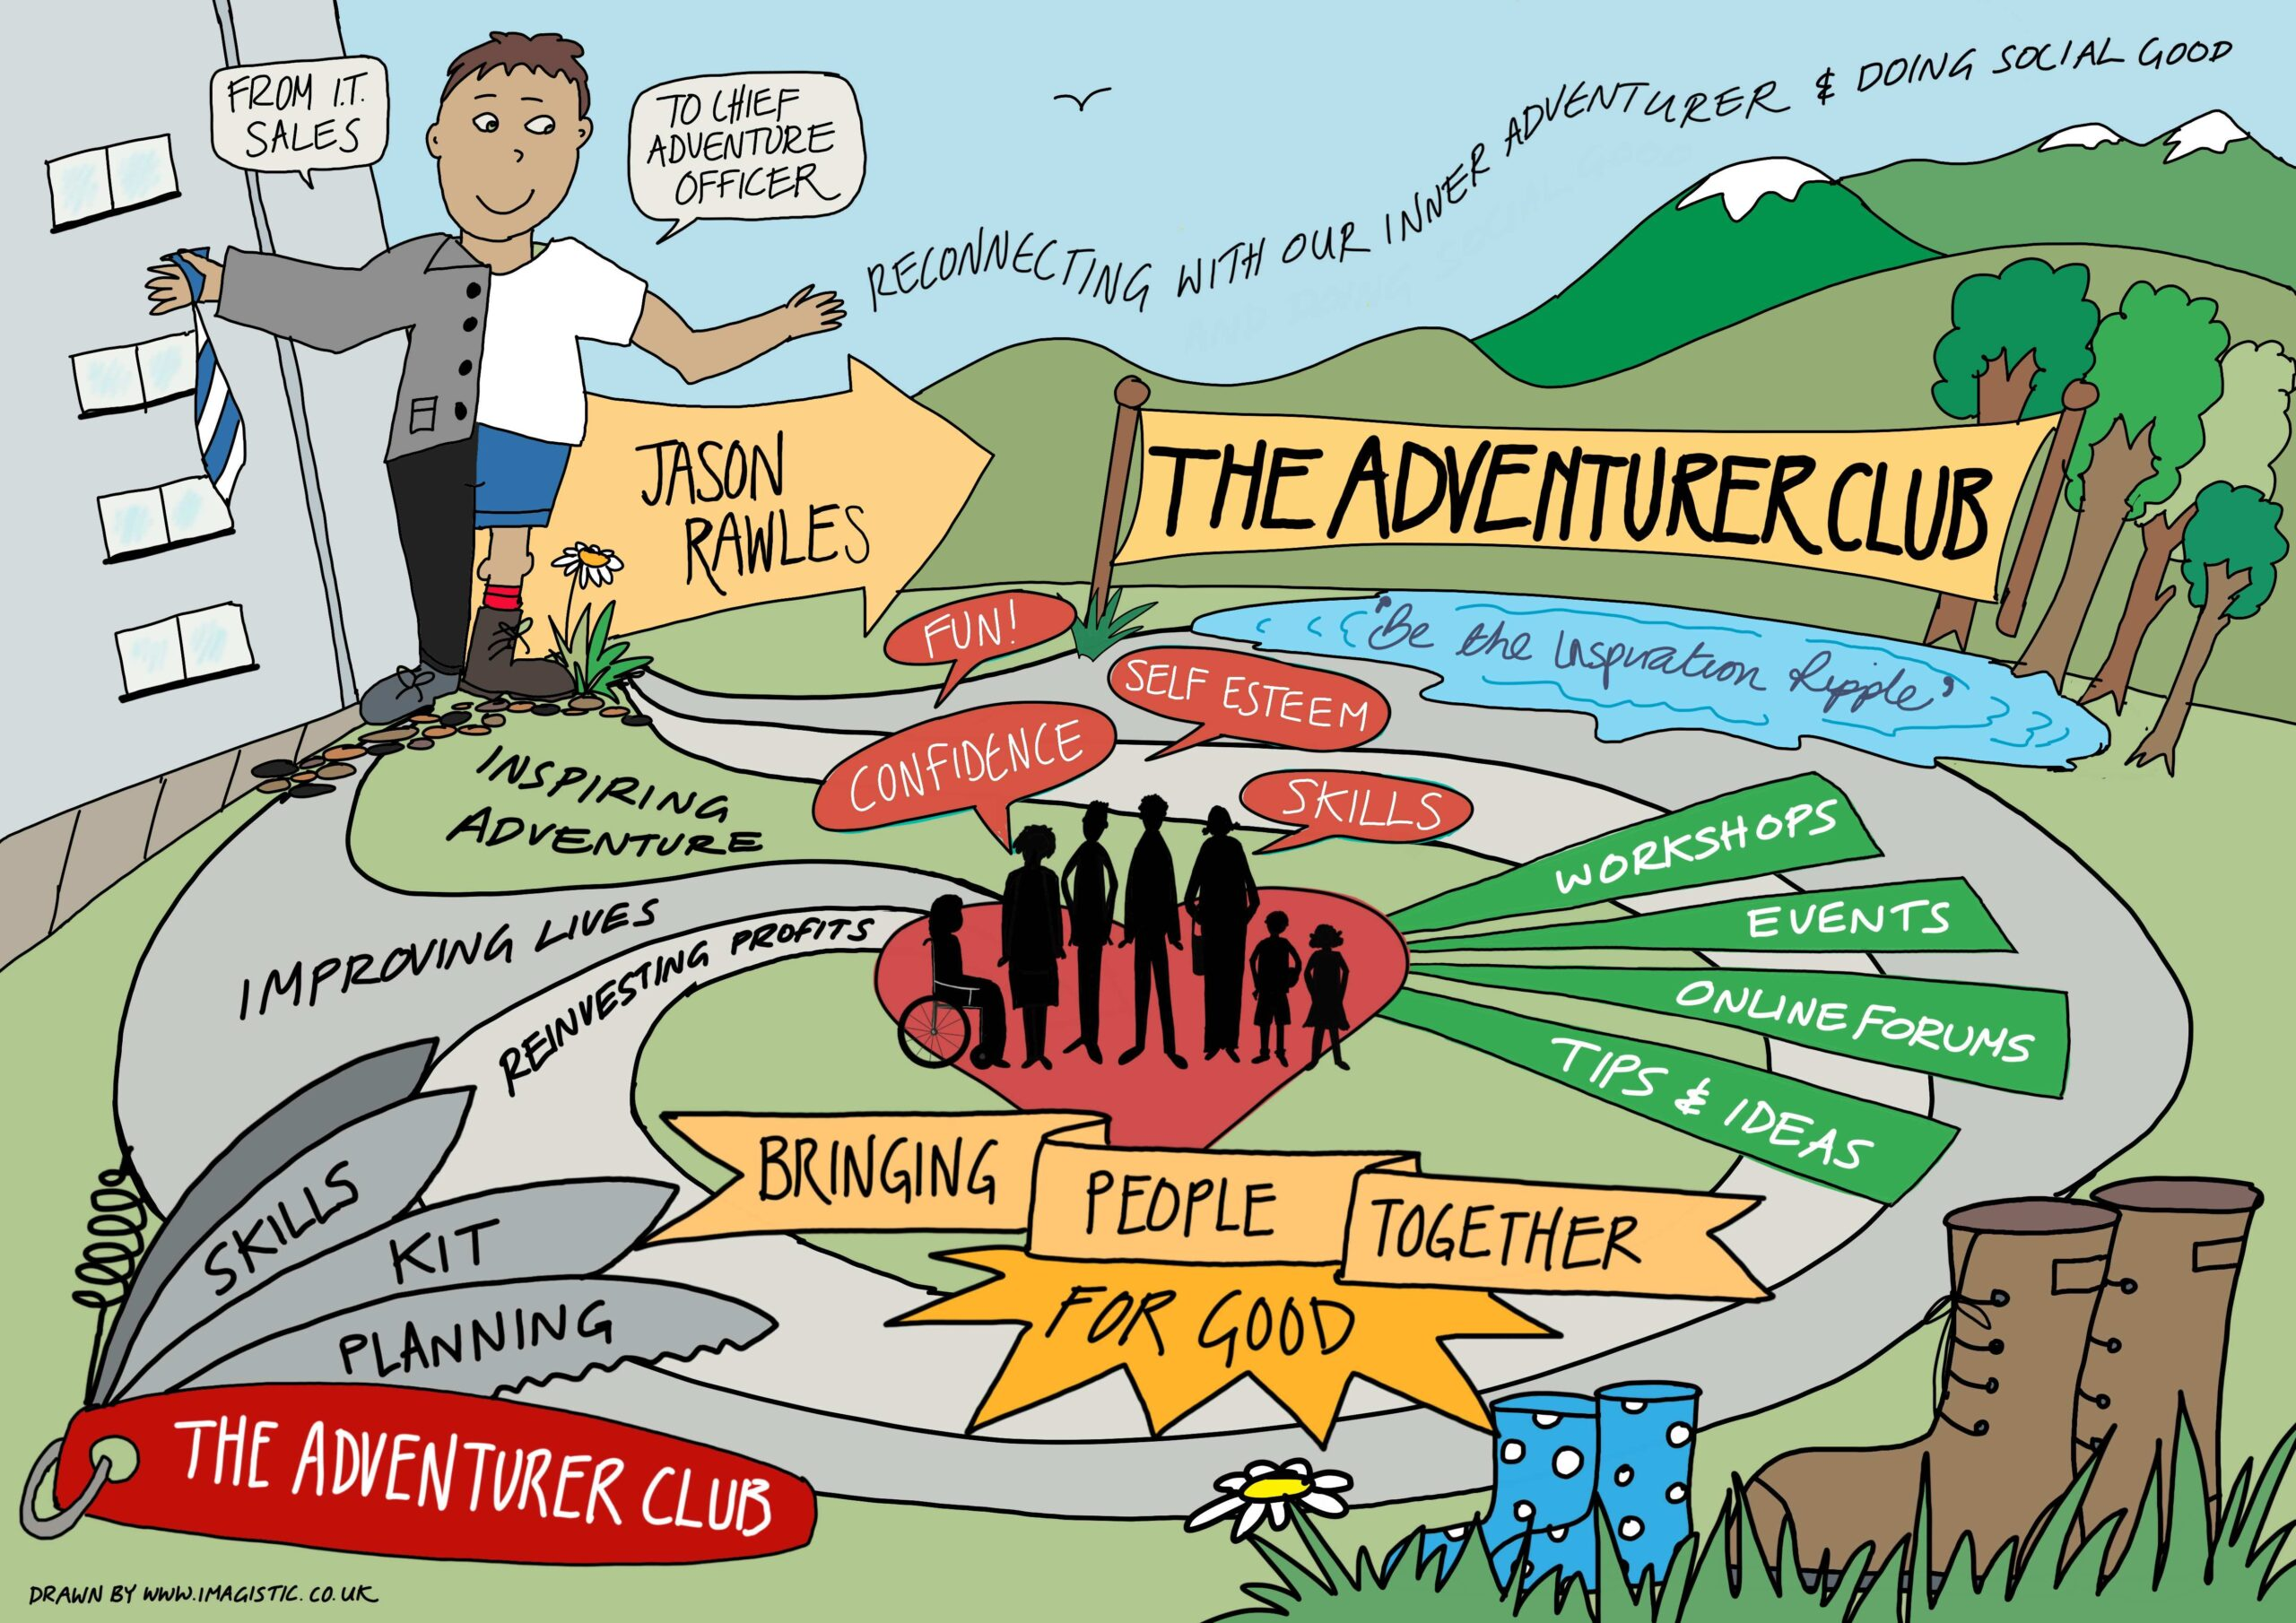 Vision Picture For The Adventurer Club